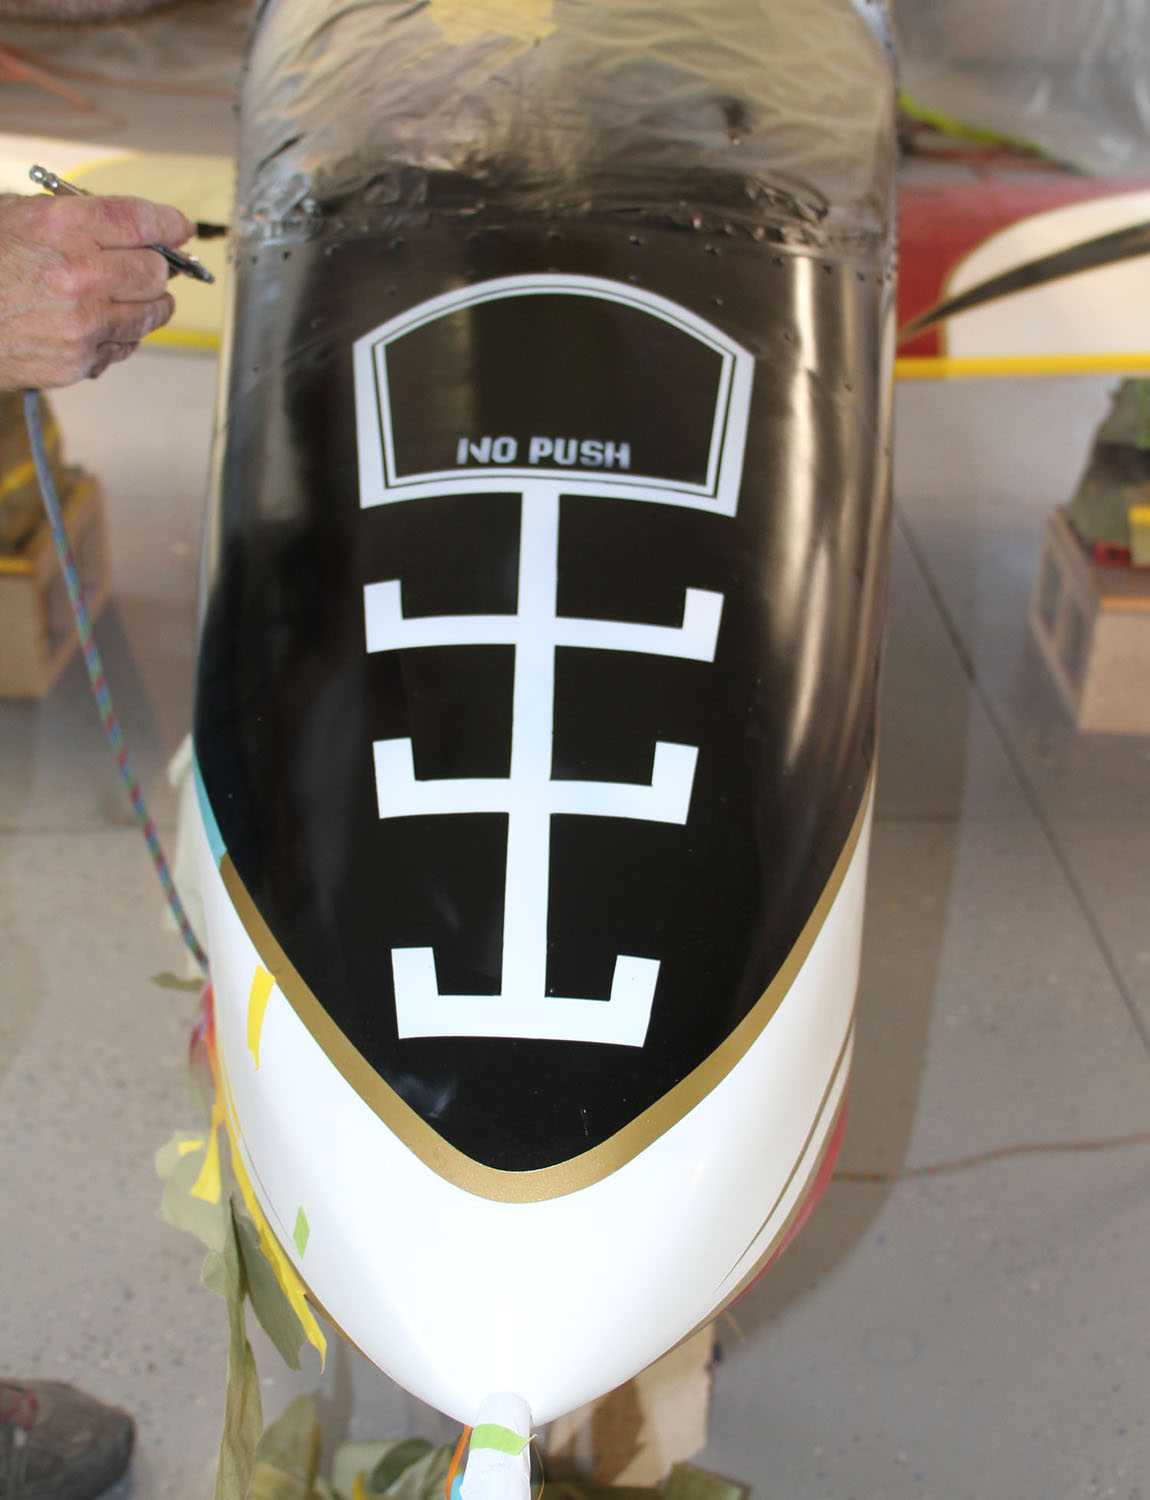 A little nose art with a nod to a re-fueling port. The owner also wants to avoid anyone pushing down on the fiberglass cowl.